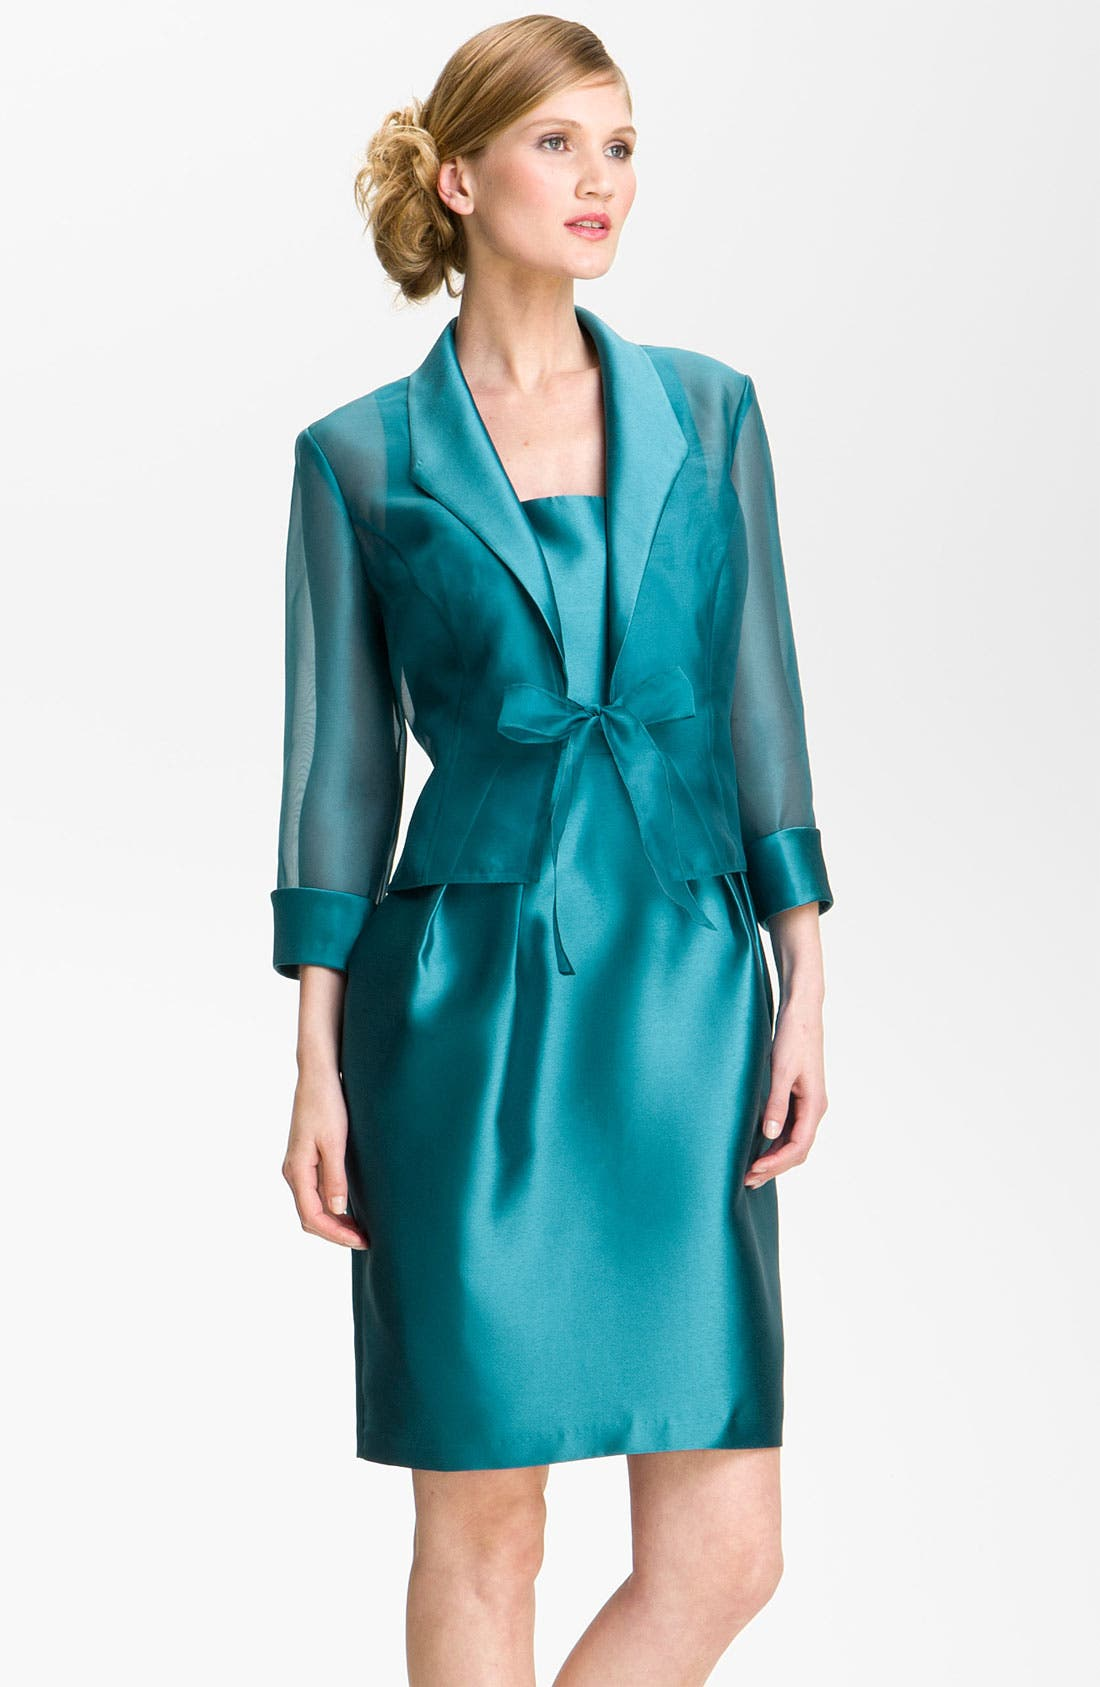 Main Image - Alex Evenings Square Neck Sheath Dress & Jacket (Petite)